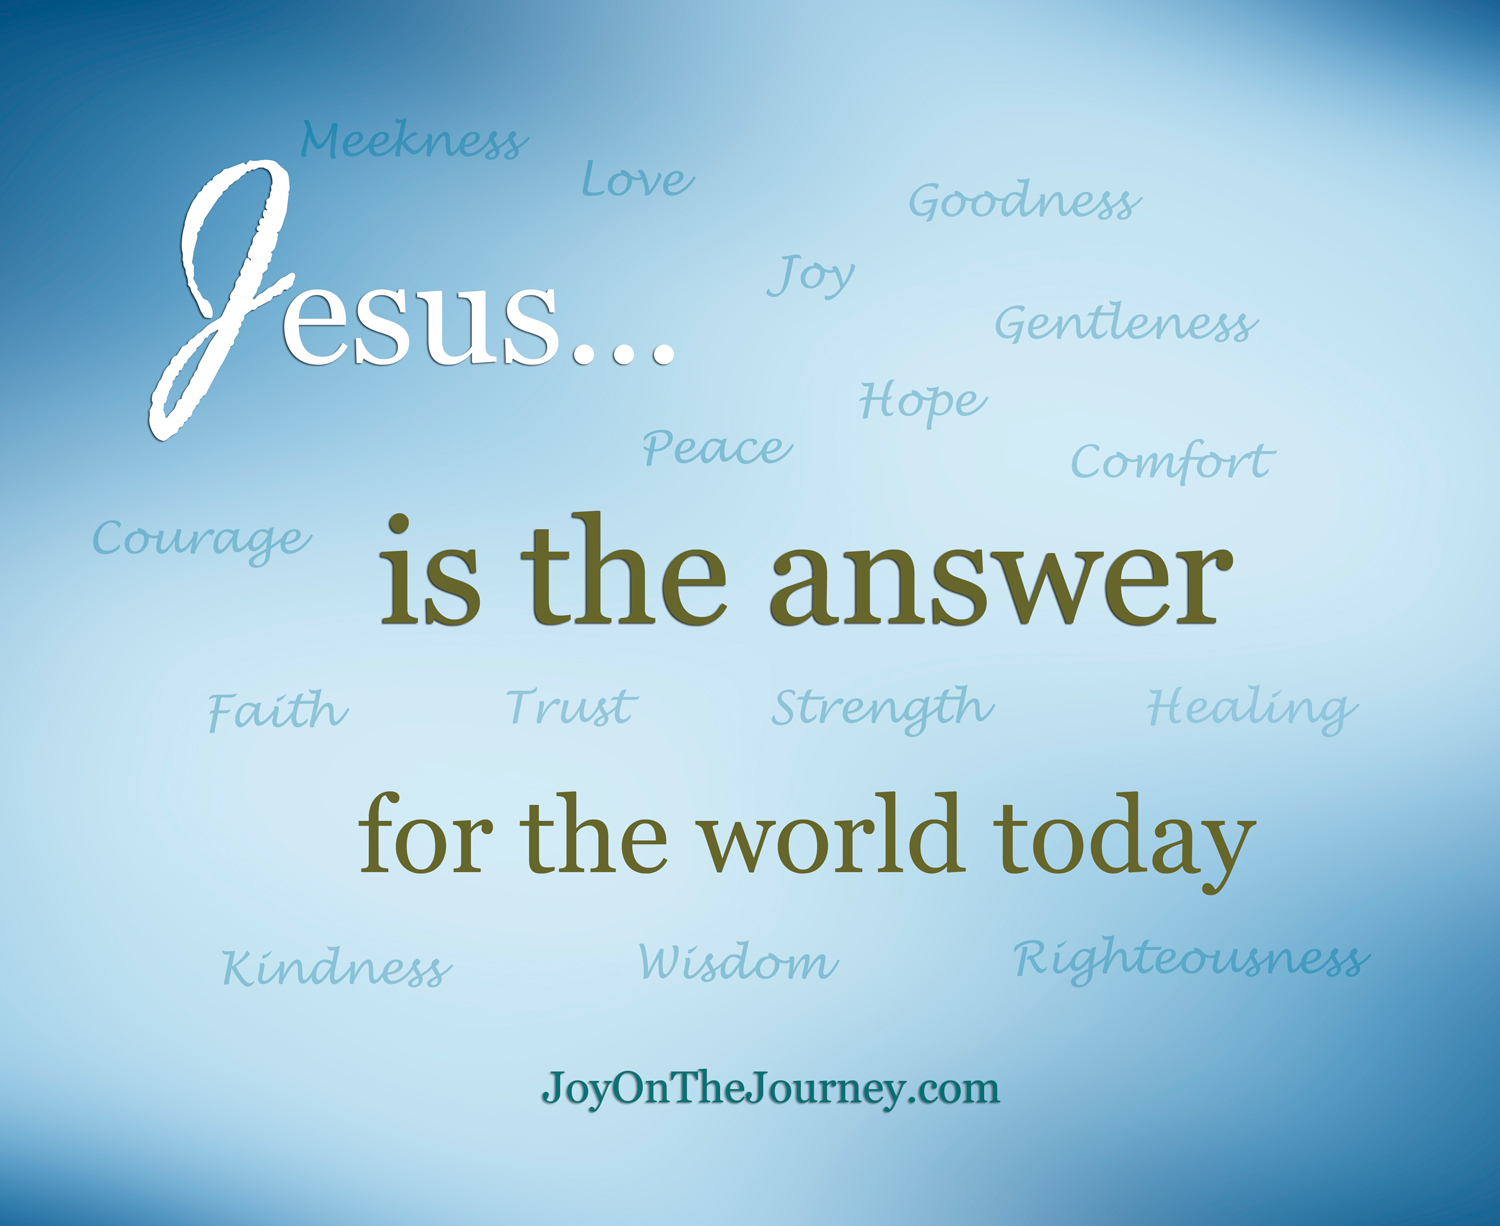 Jesus-Is-The-Answer_JoyOnTheJourneycom